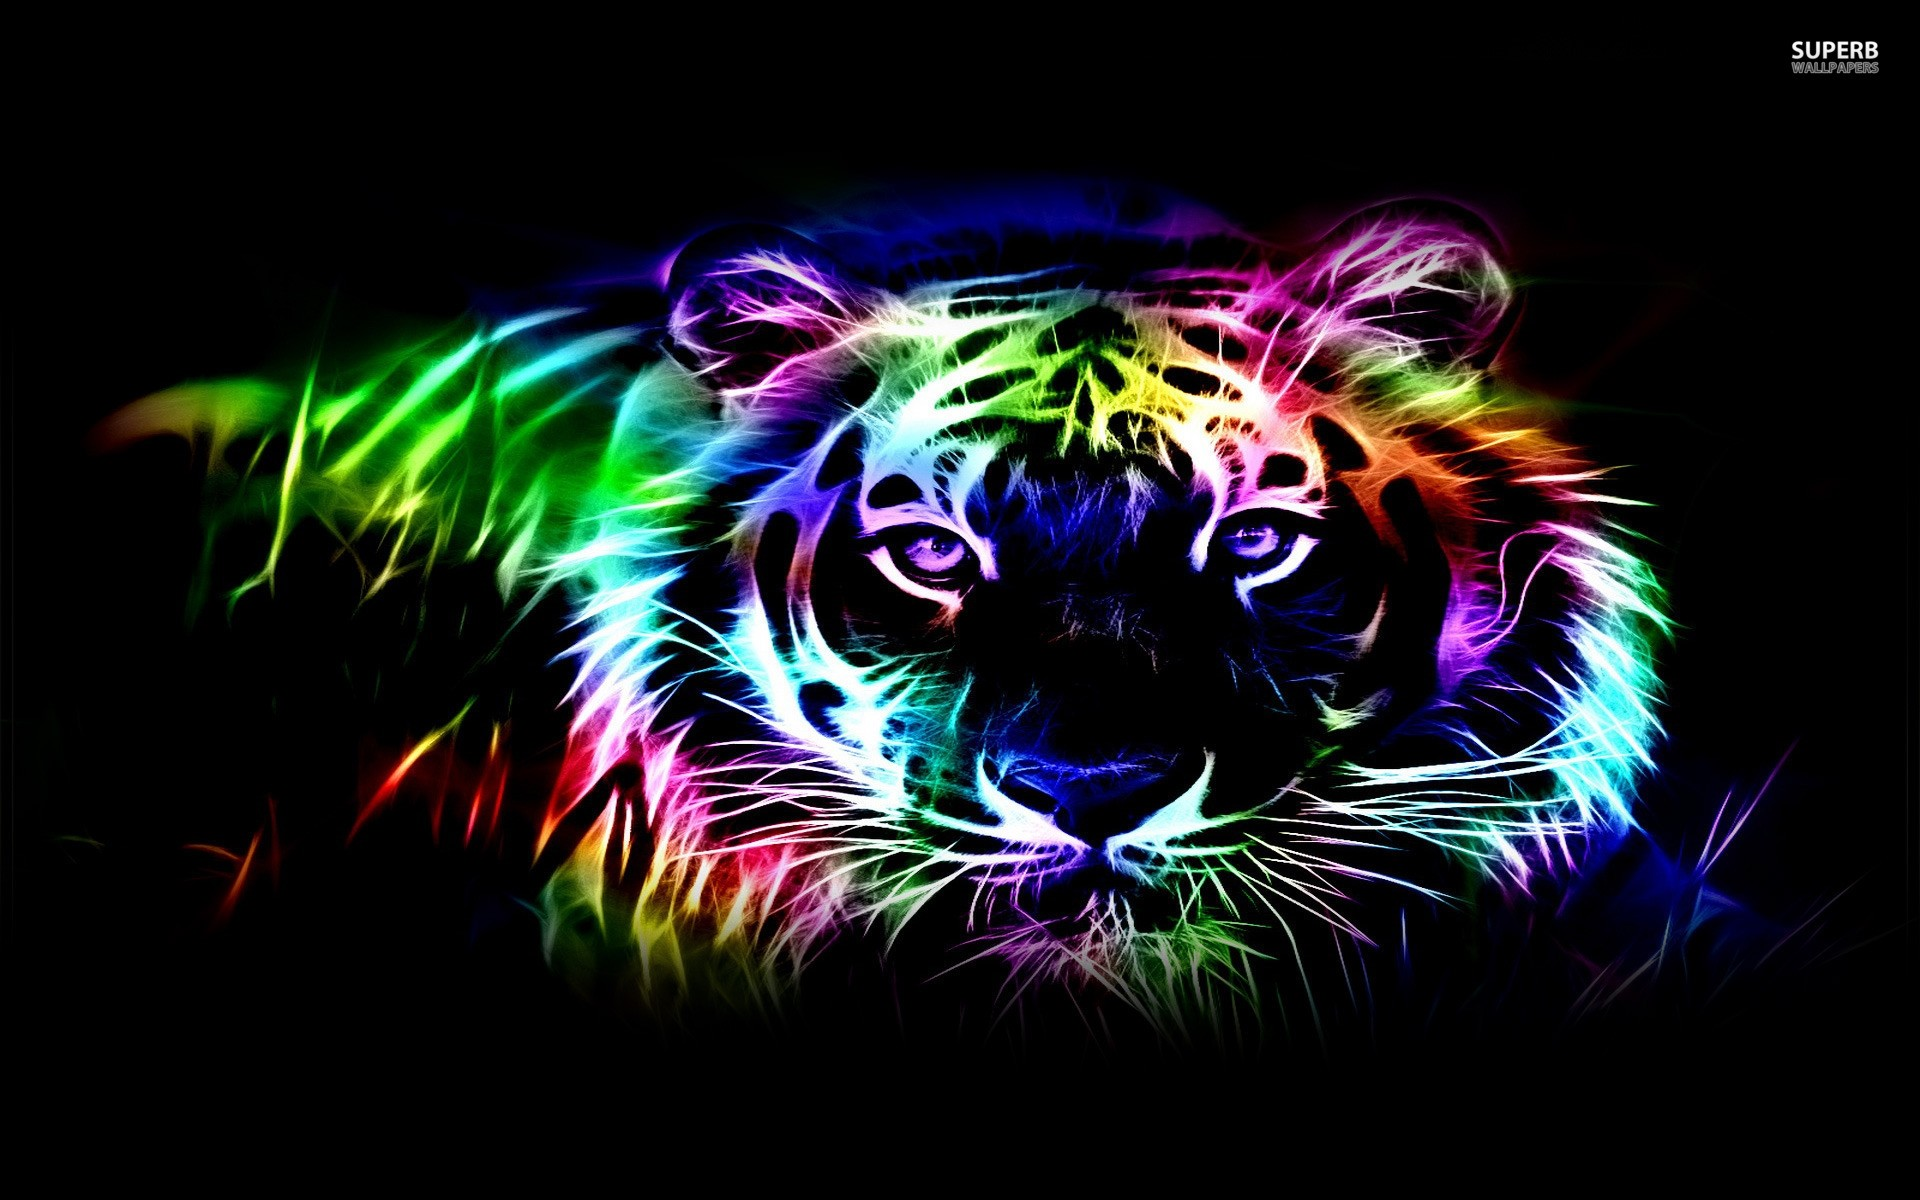 Cool neon wallpaper 54 images - Amazing wallpapers for boys ...